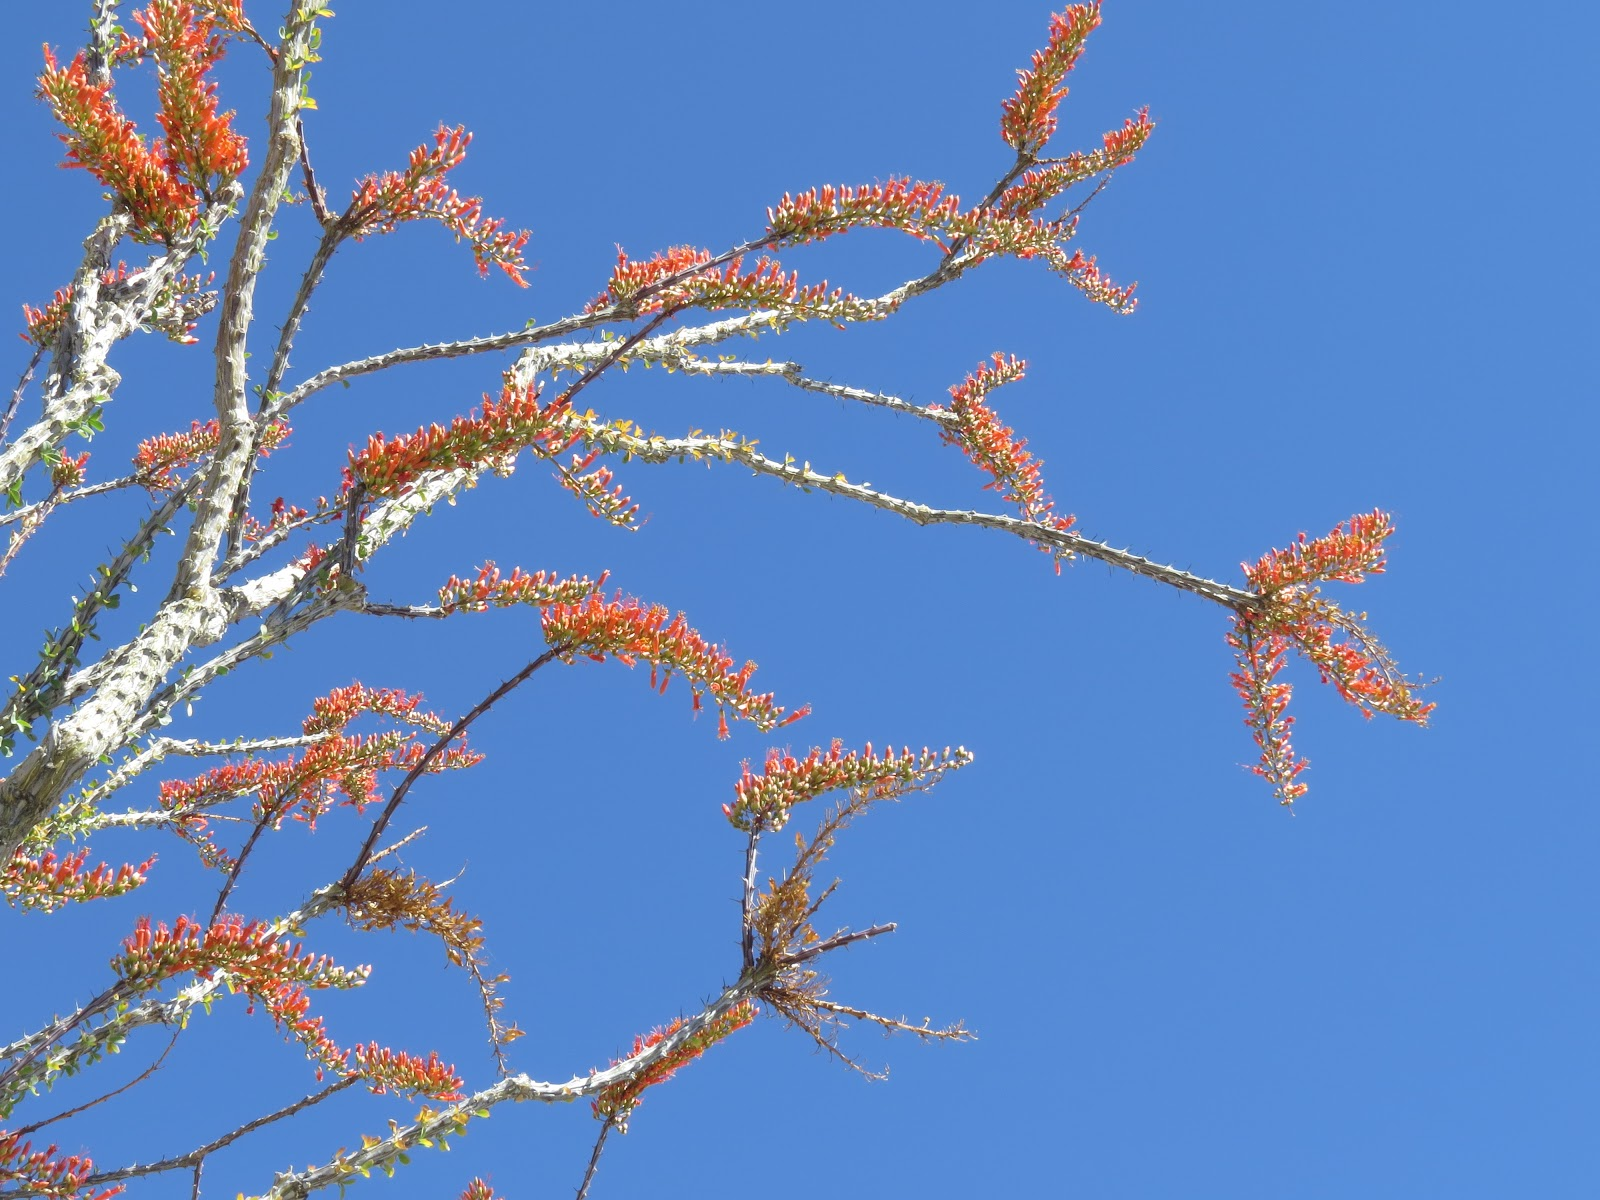 Joshua Tree National Park ocotillo blooms